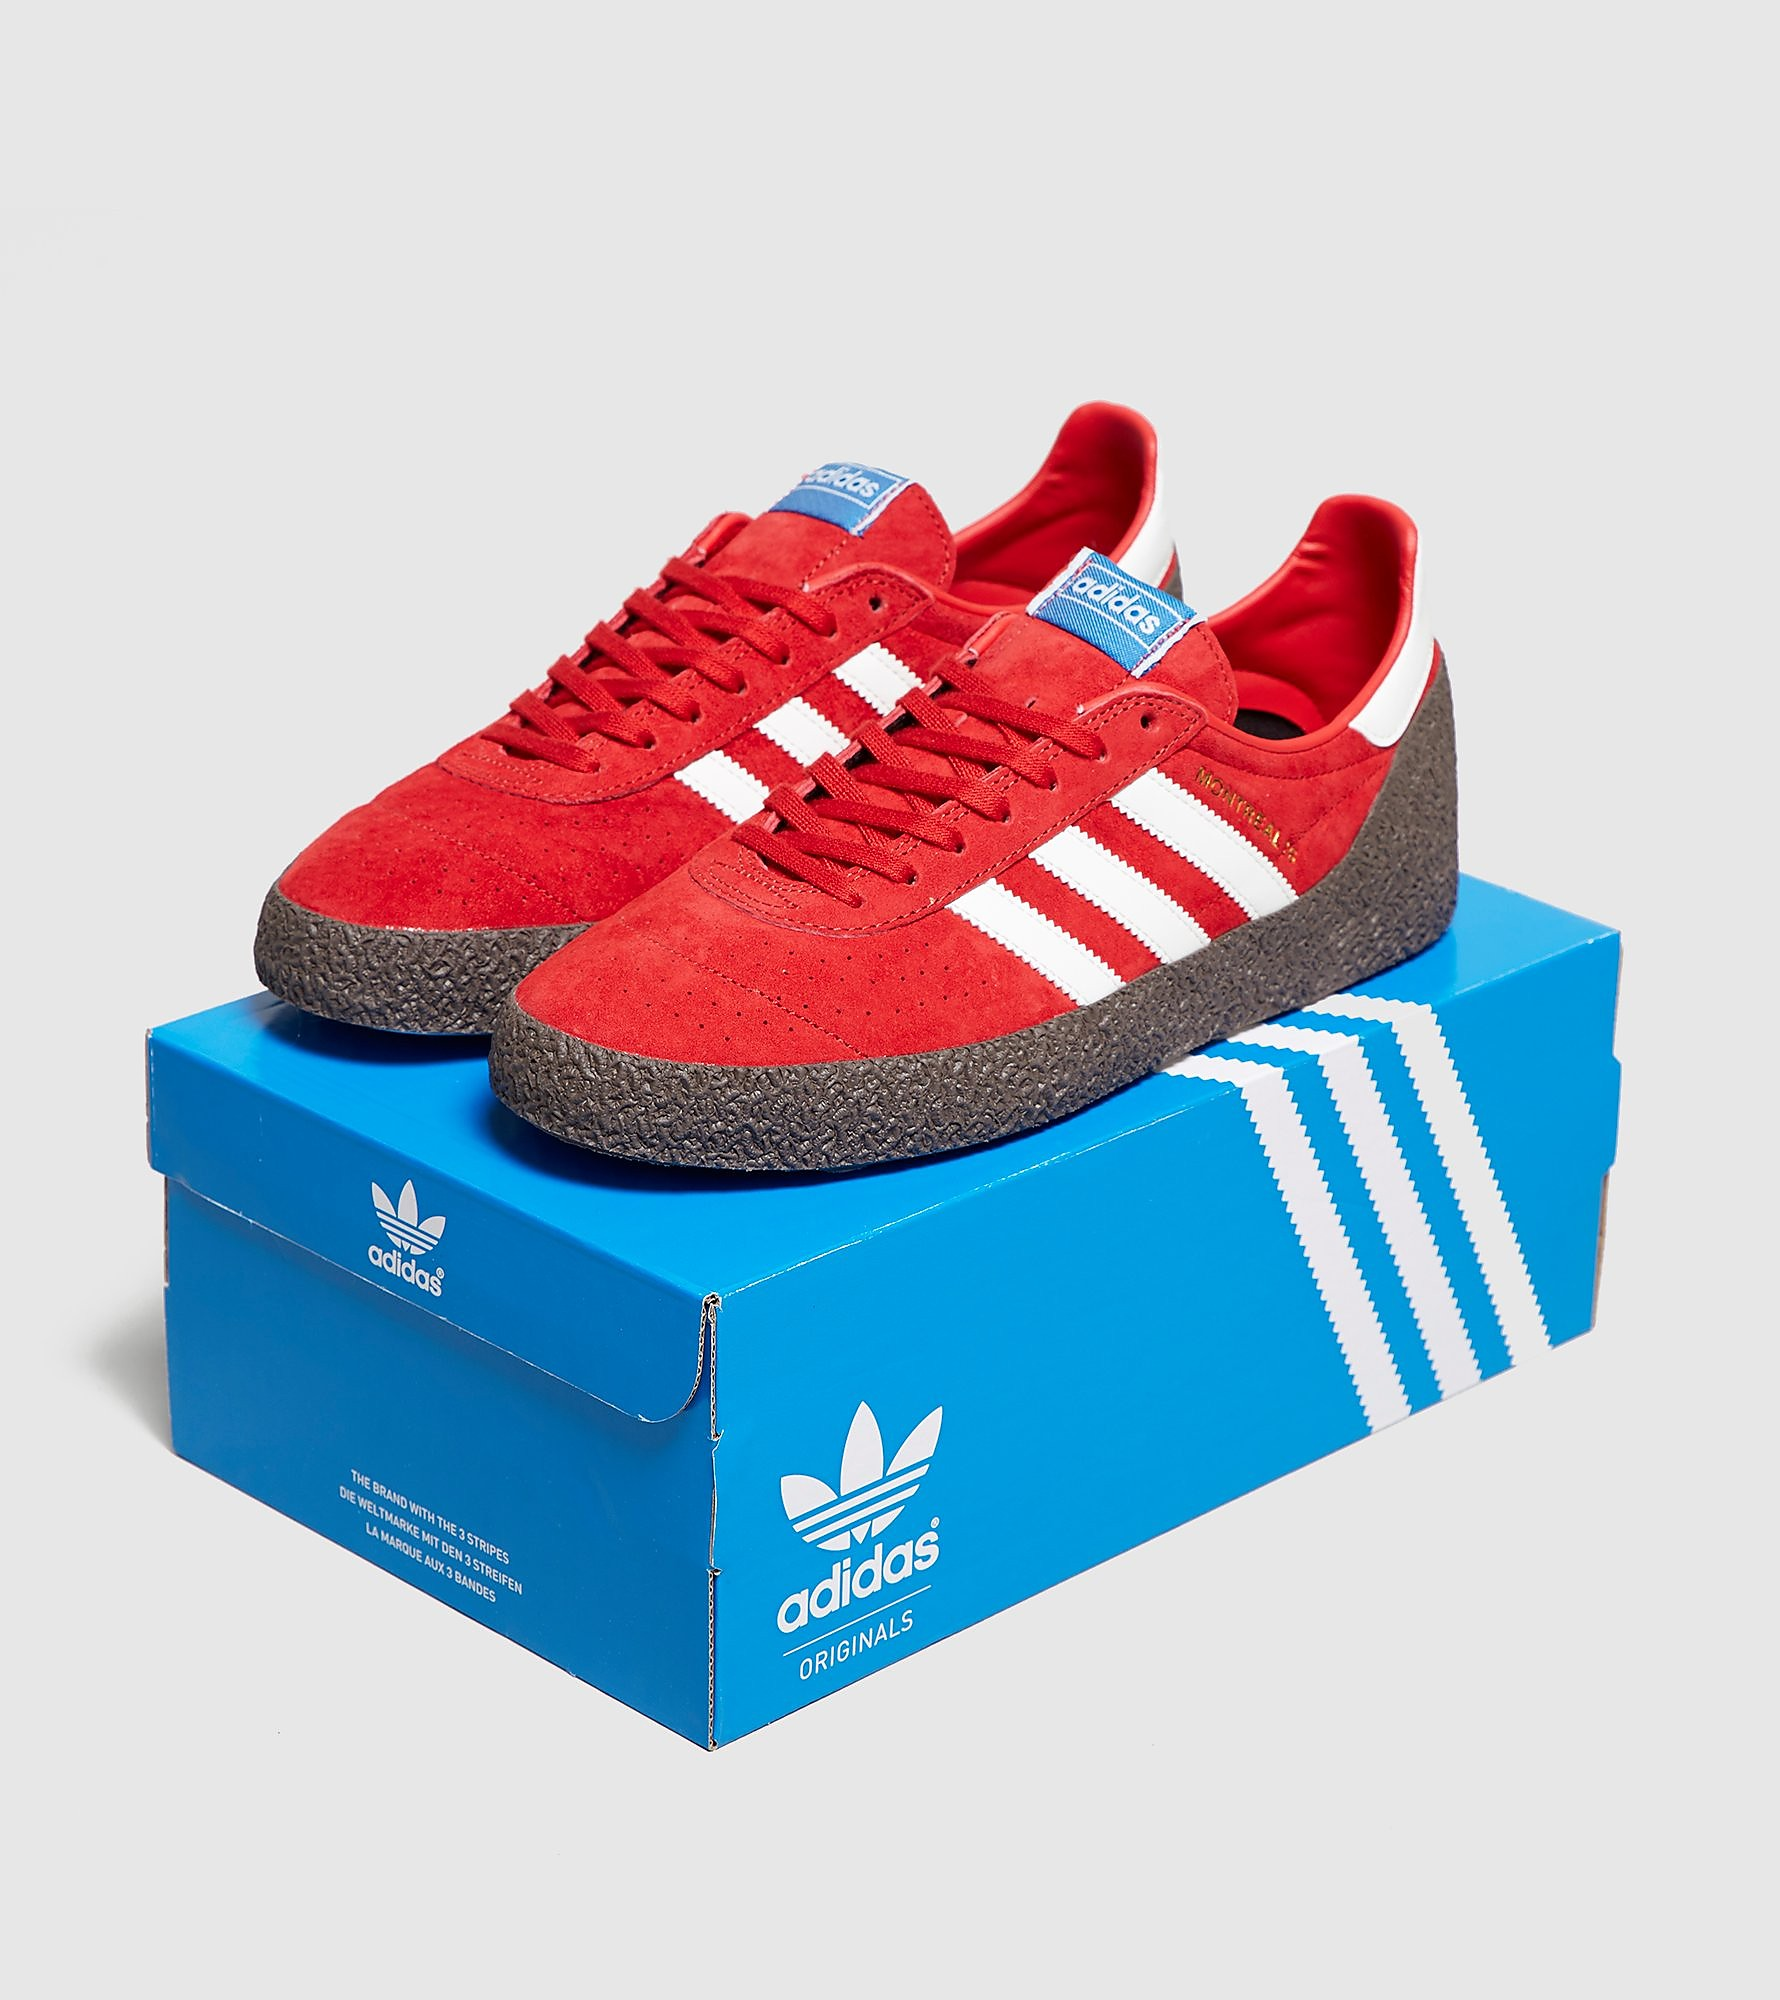 adidas Originals Montreal 76 - size? Exclusive